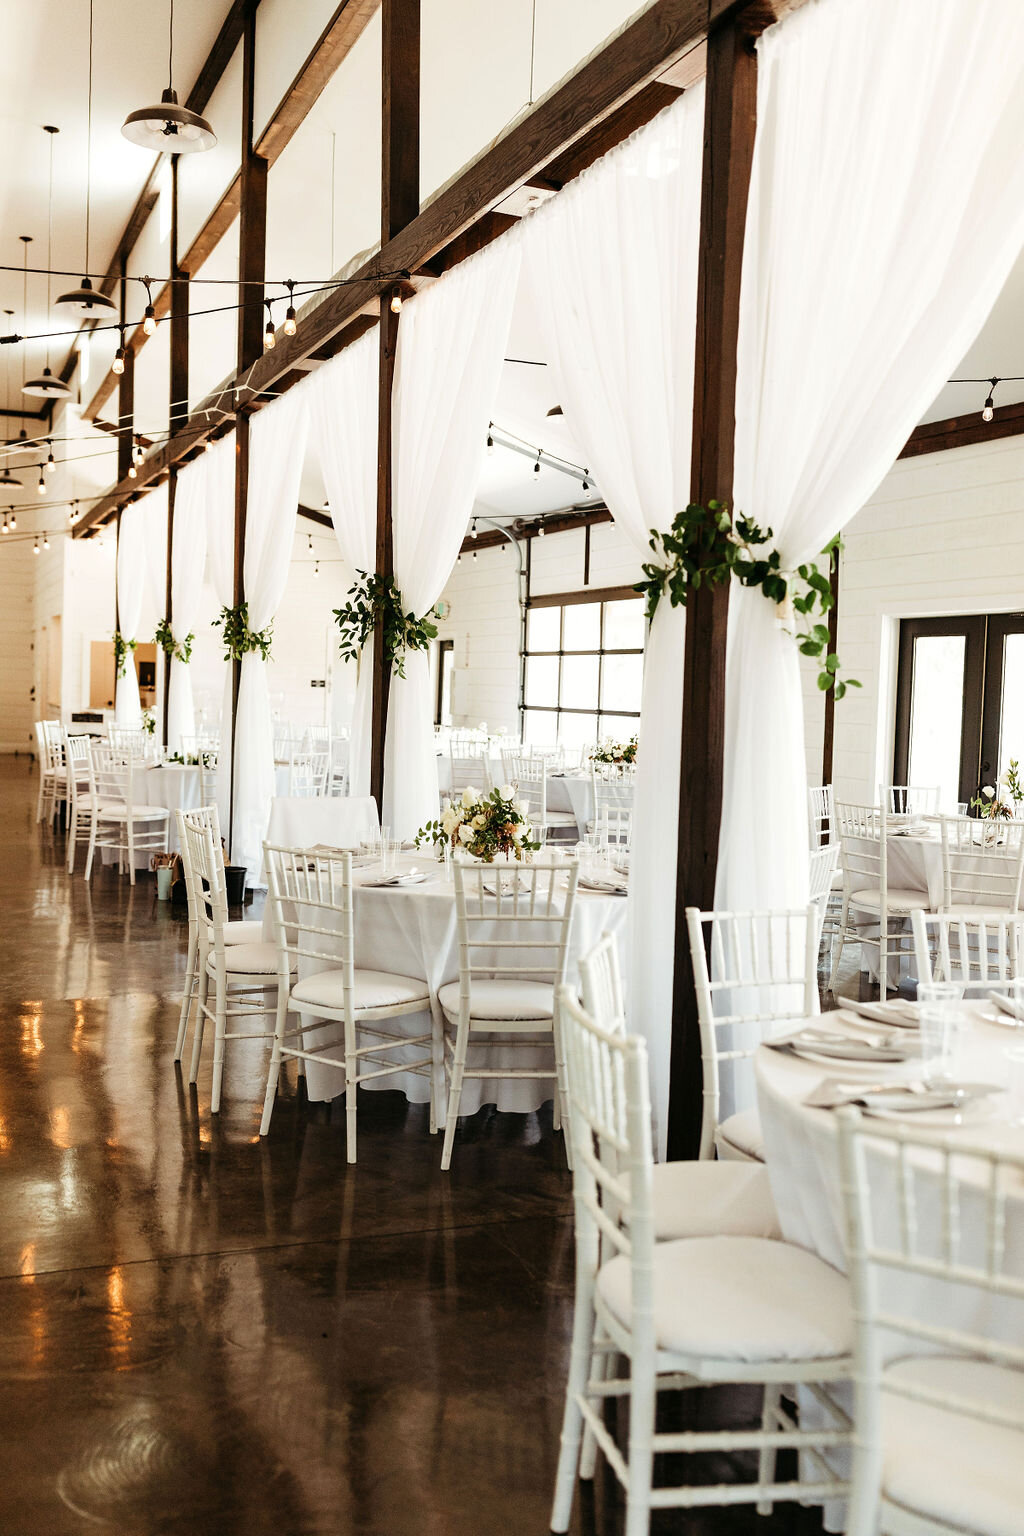 Light, Airy Tulsa White Barn Wedding Venue with a view 32.jpg